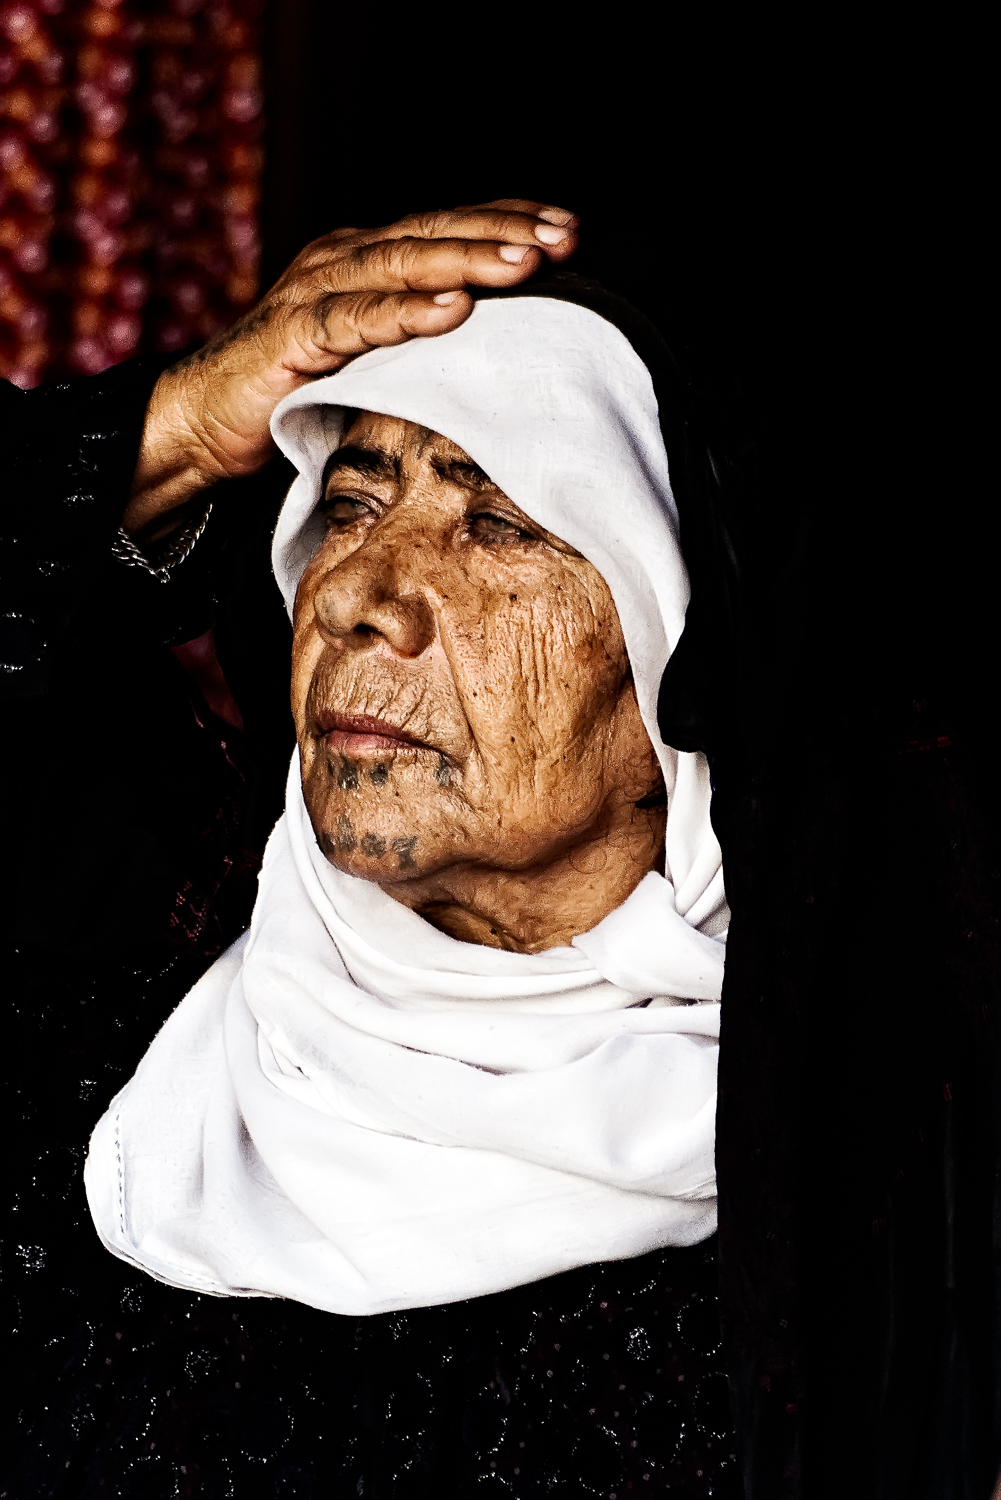 Bedouin woman with facial tatoos